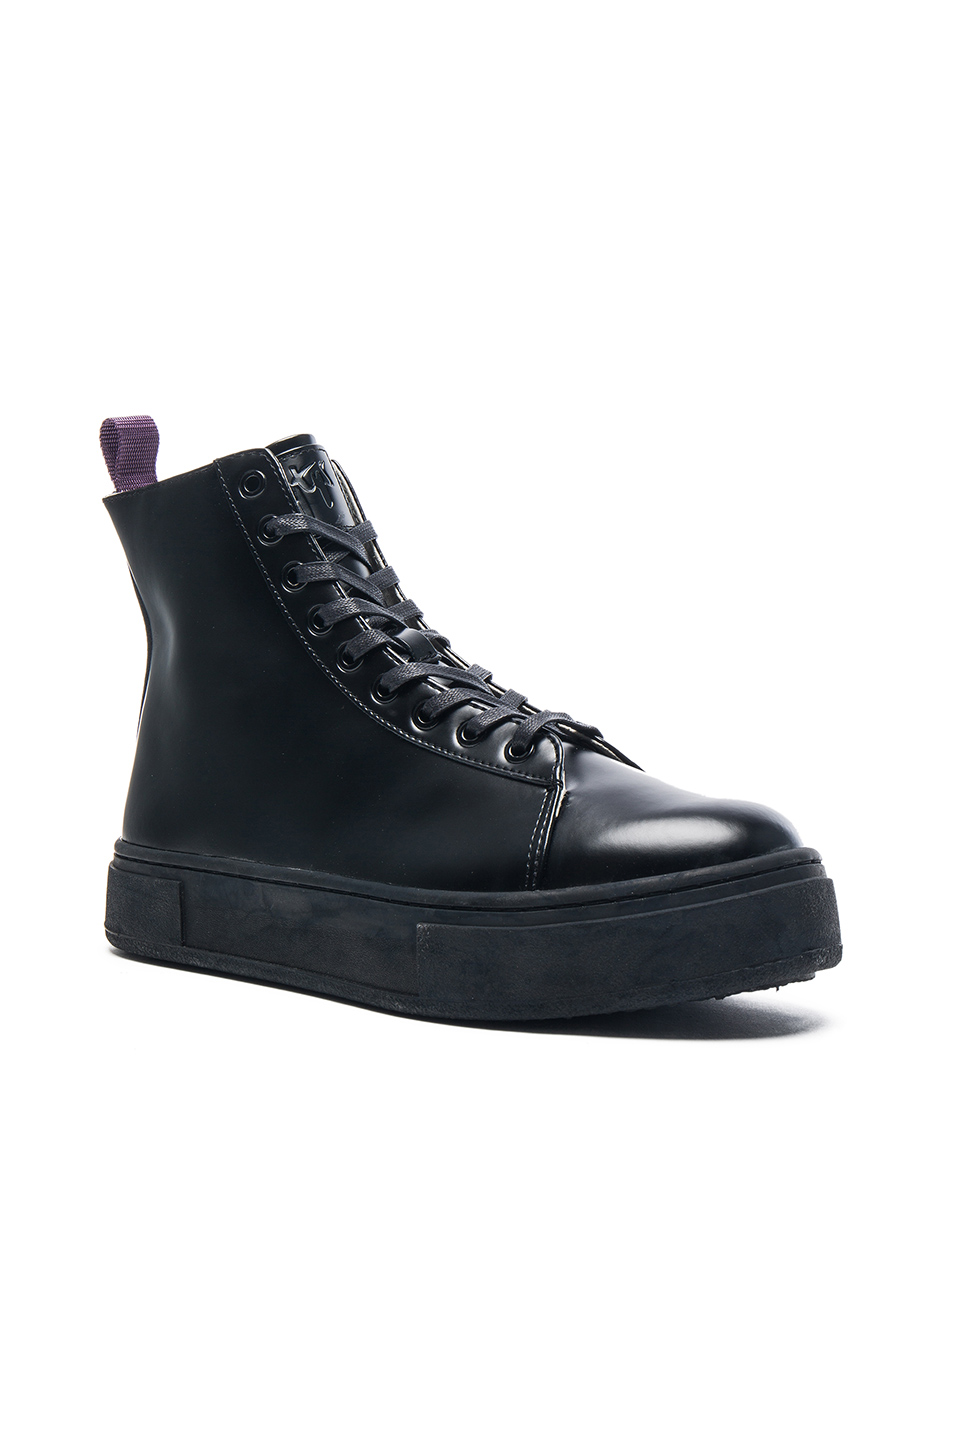 Eytys Kibo Leather Boots in Black